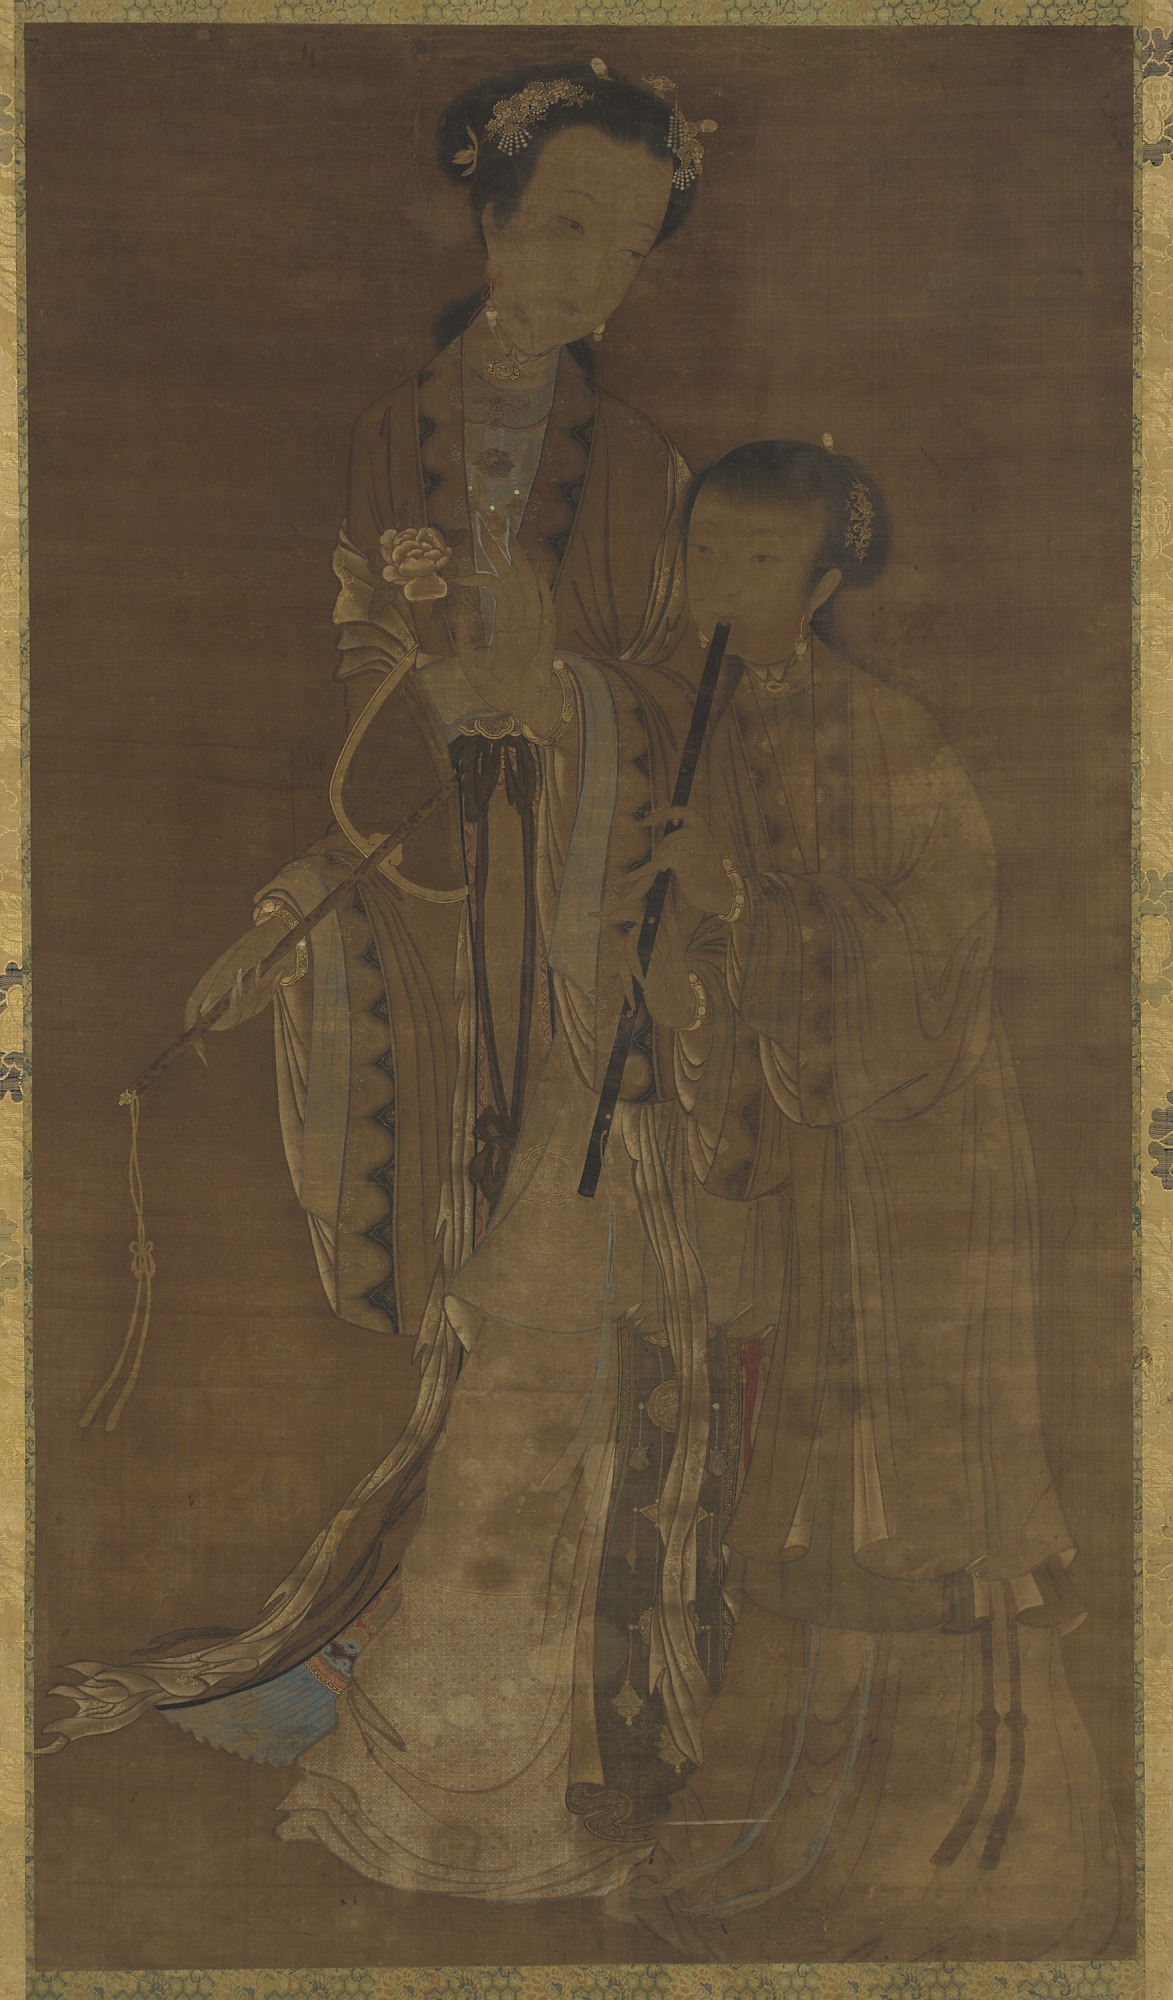 : Courtesans with fan and flute